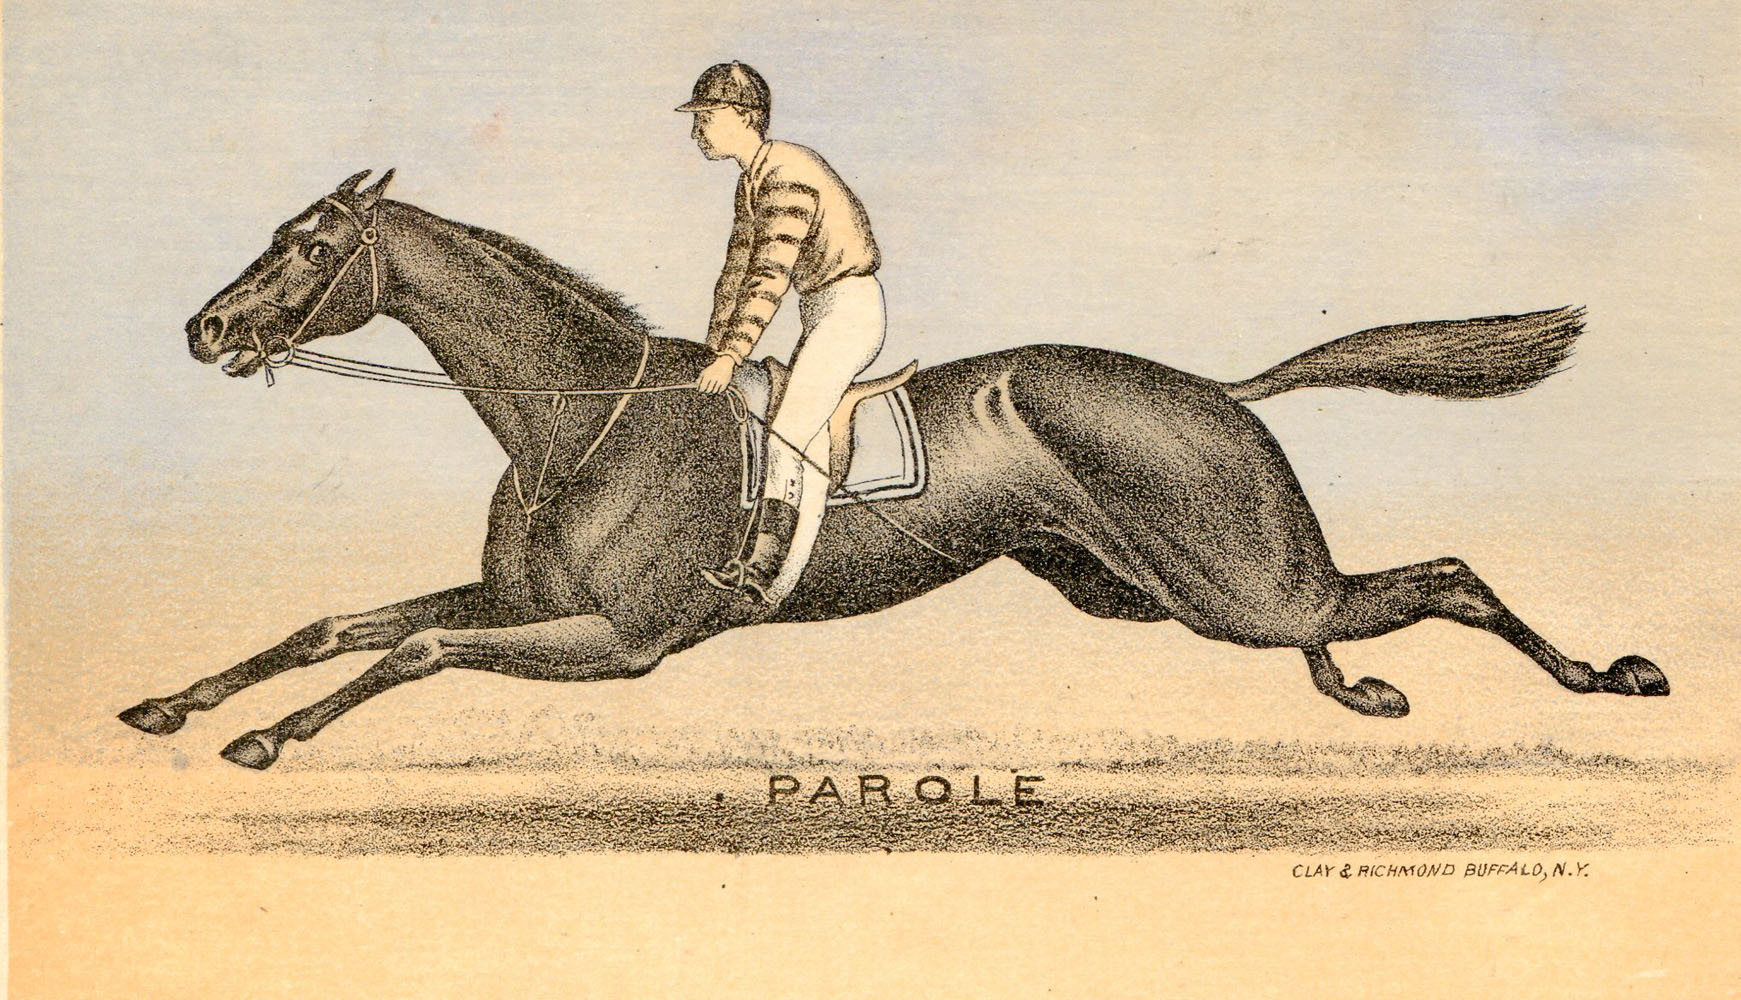 A print of Parole by Clay & Richmond (Museum Collection)